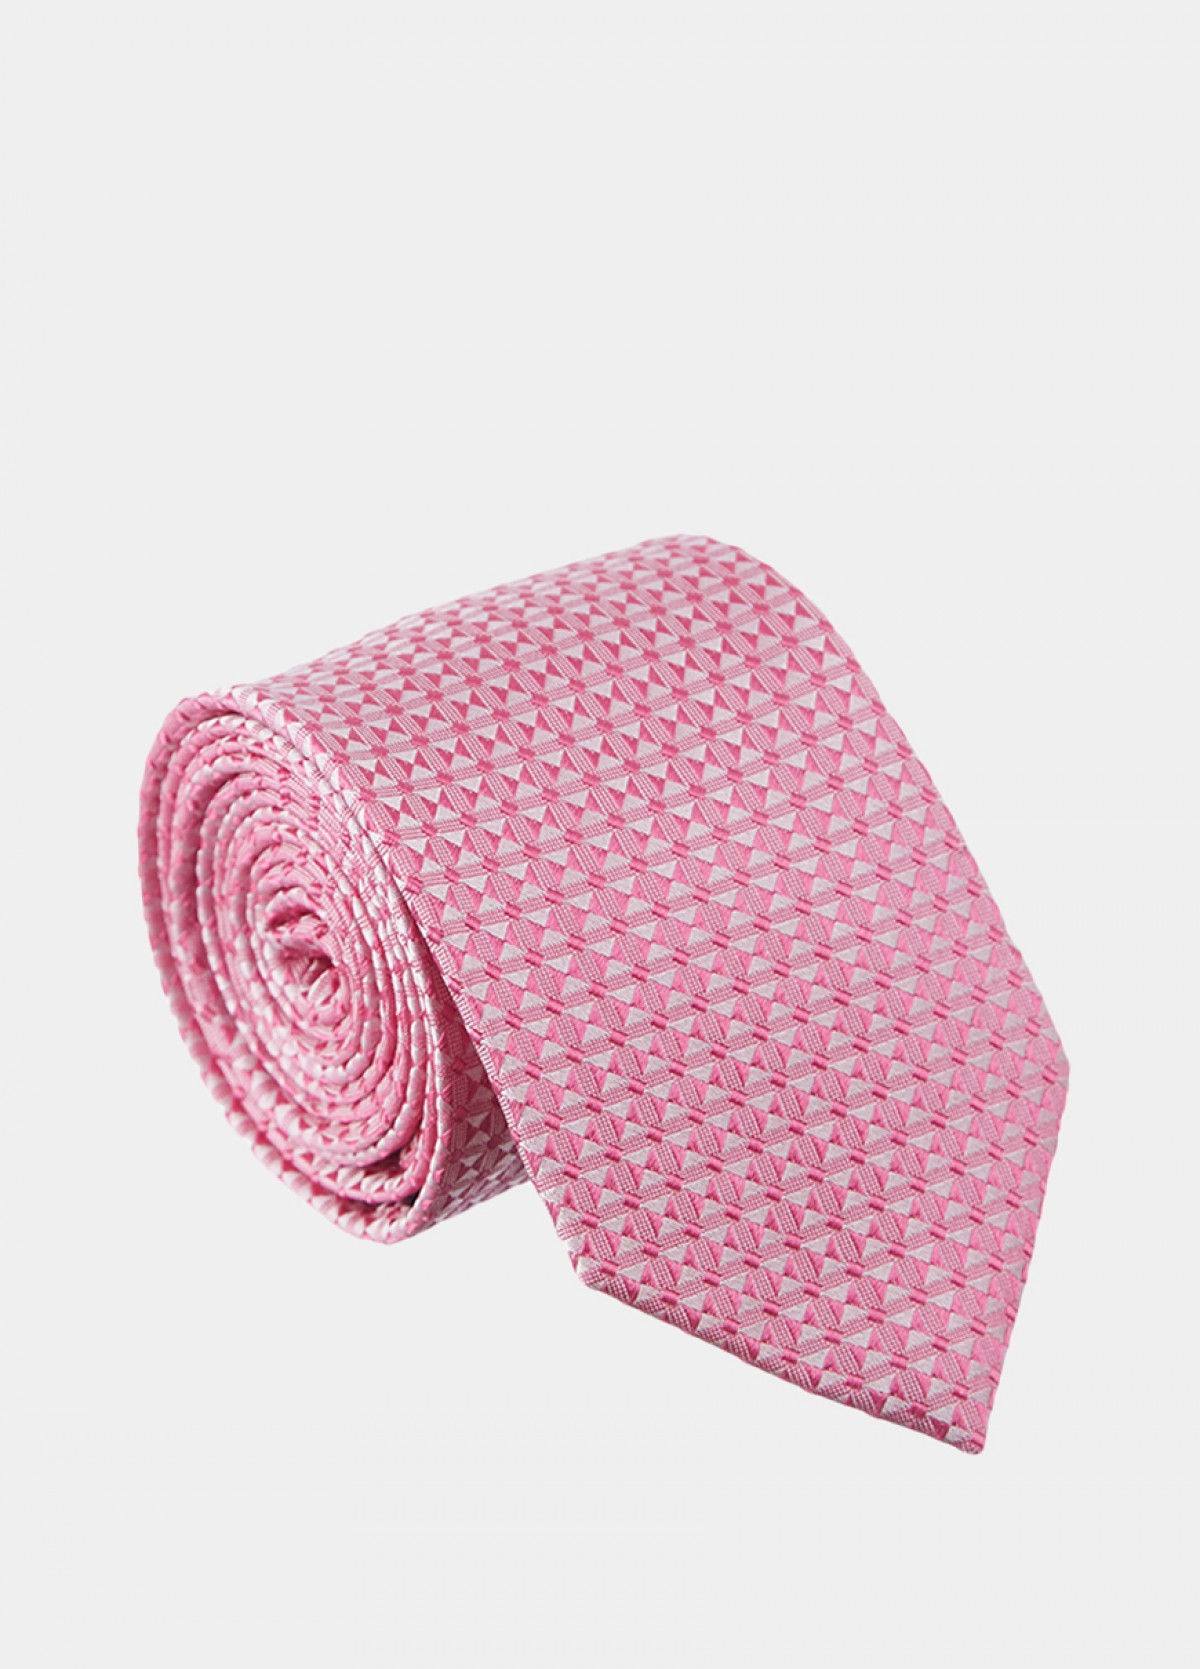 The Silk Stain Resistant Tie